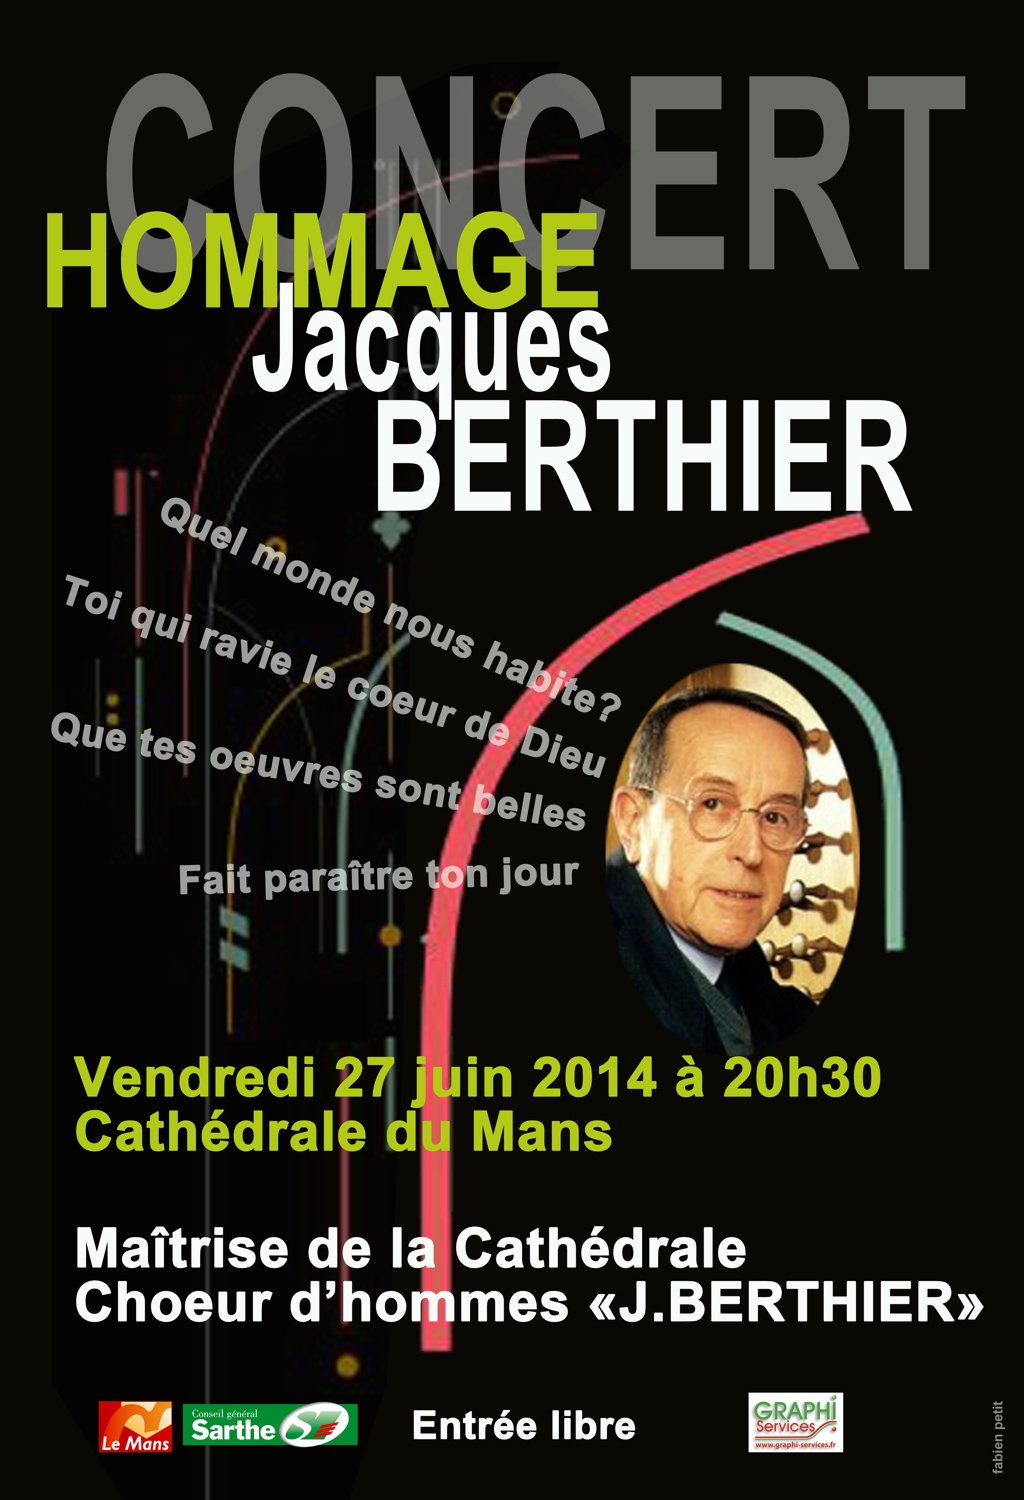 01-Hommage_Jacques_Berthier.jpg